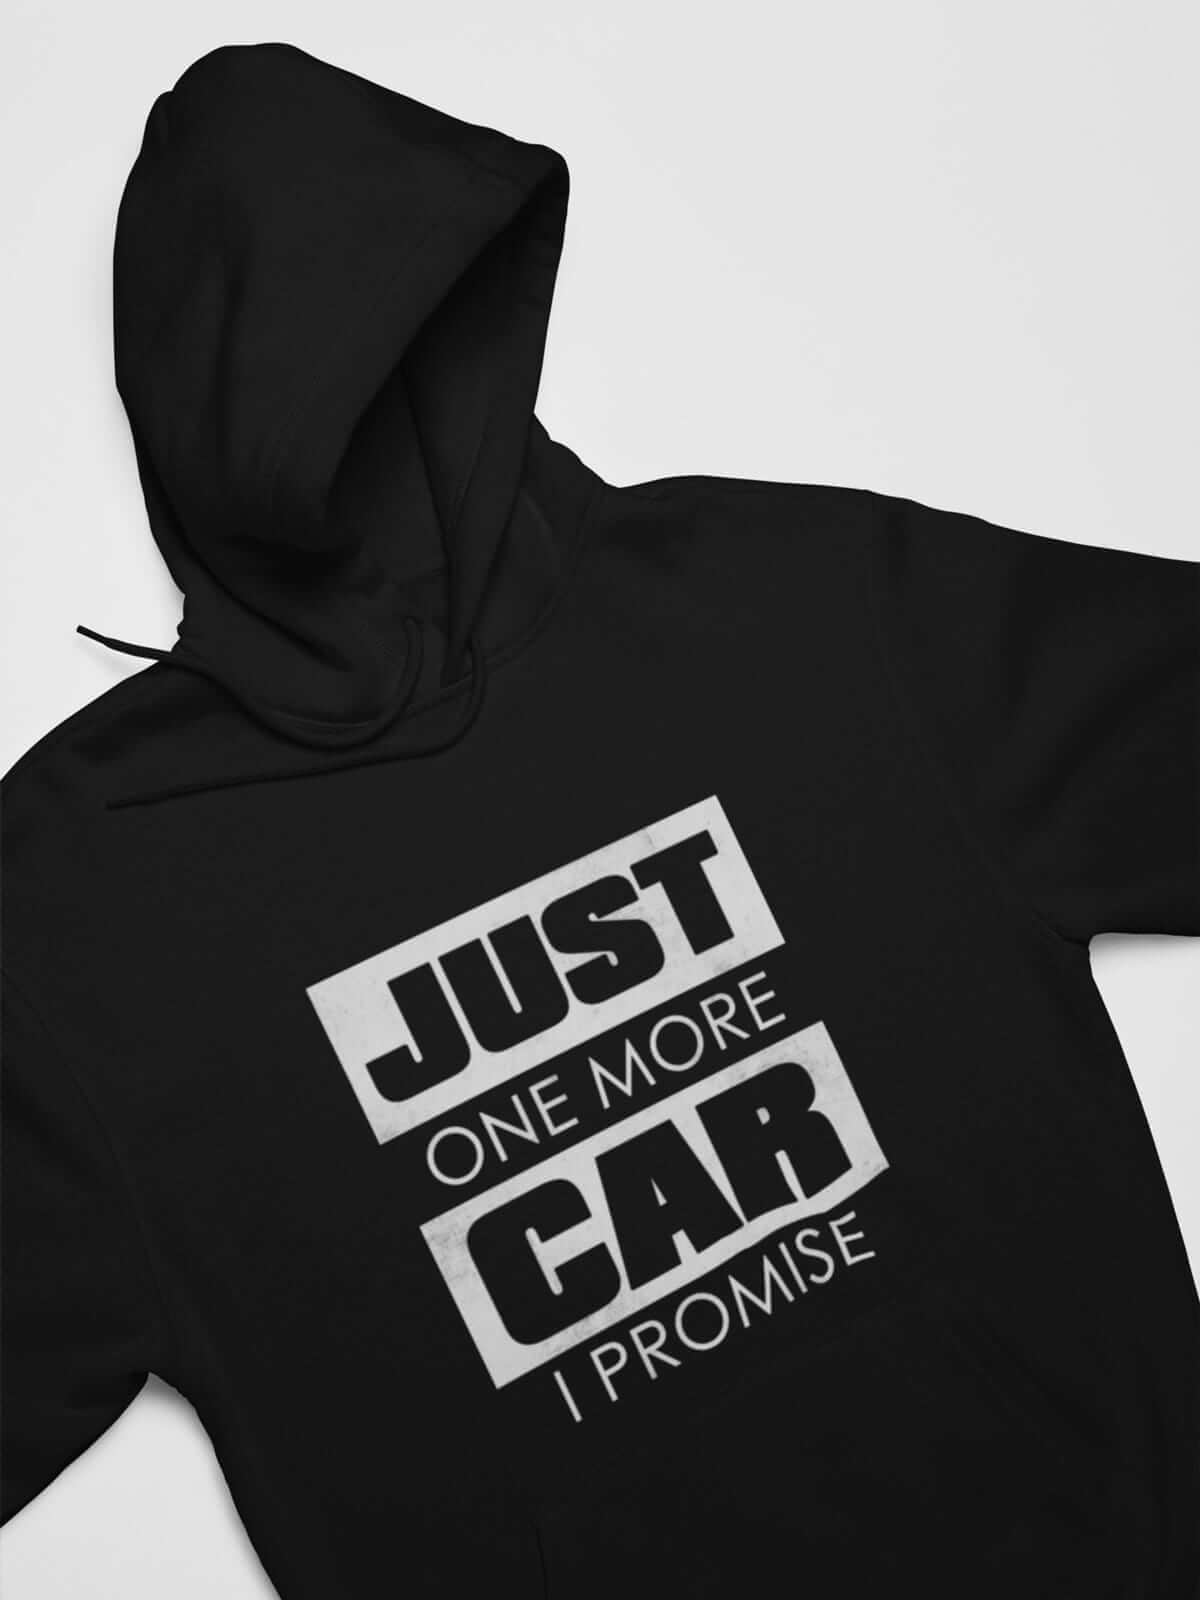 just-one-more-car-i-promise-car-hoodie-in-black_-car-fans_-car-lovers-gift-hoodie_-car-guys-hooded-sweatshirt_-car-enthusiast.jpg